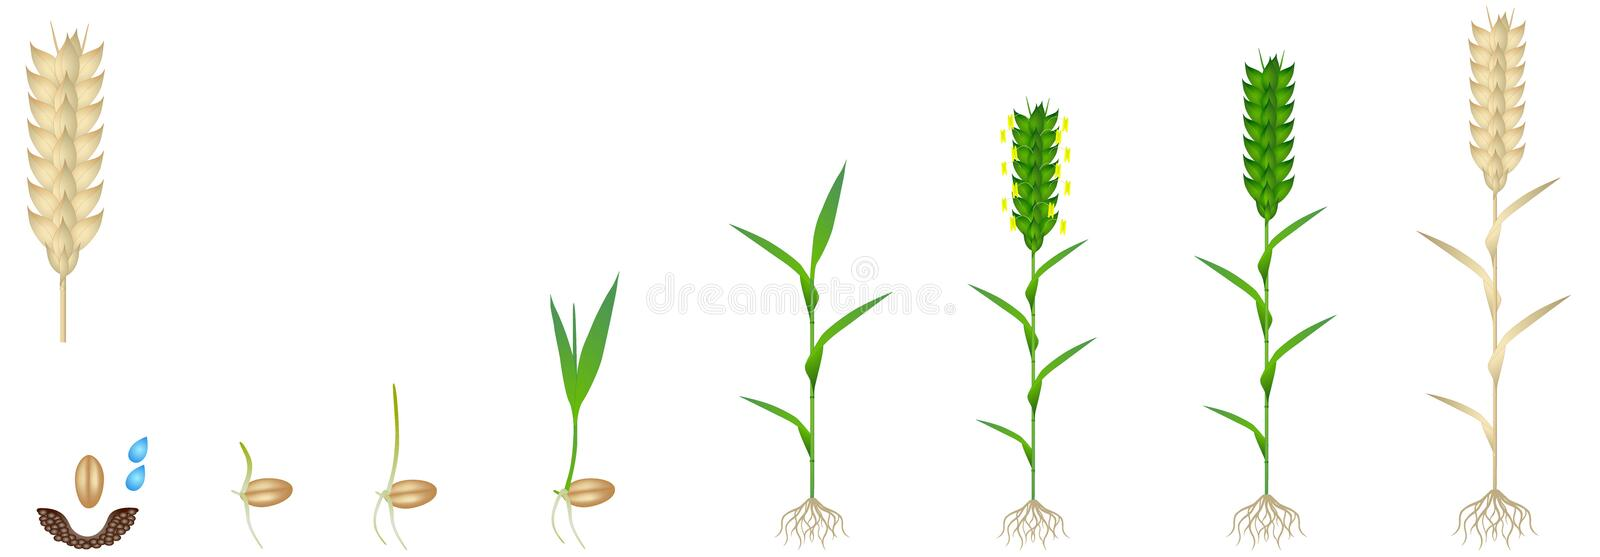 Cycle of growth of a wheat plant on a white background. stock image